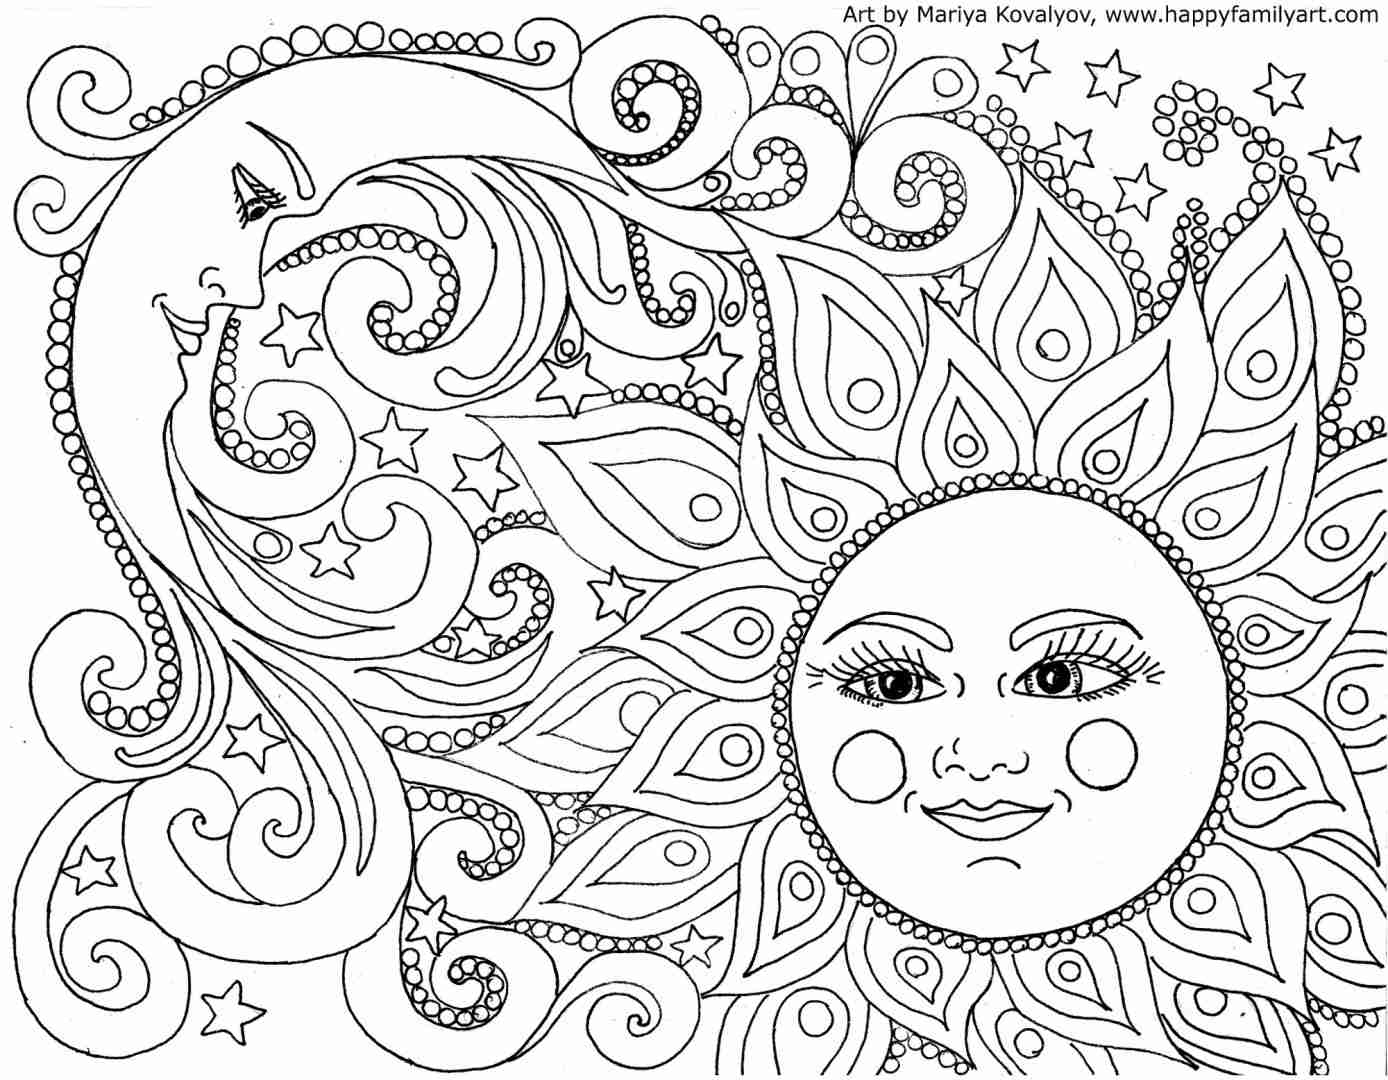 1388x1080 Free Printable Simple Boho Girly Coloring Pages Just Colorings